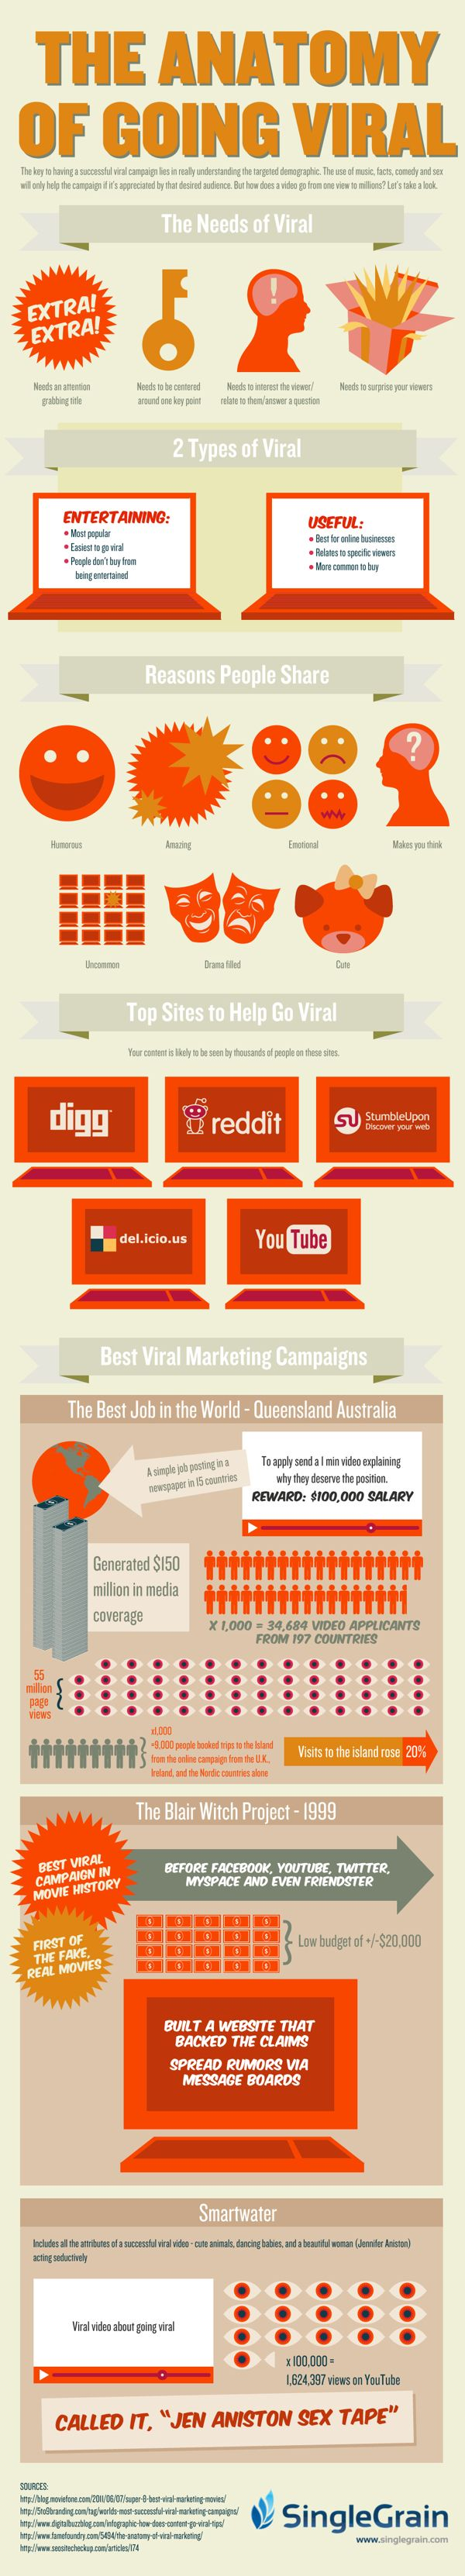 """The Anatomy of Going Viral (Infographic)"" Original Source: http://www.singlegrain.com/blog/the-anatomy-of-going-viral-infographic/"